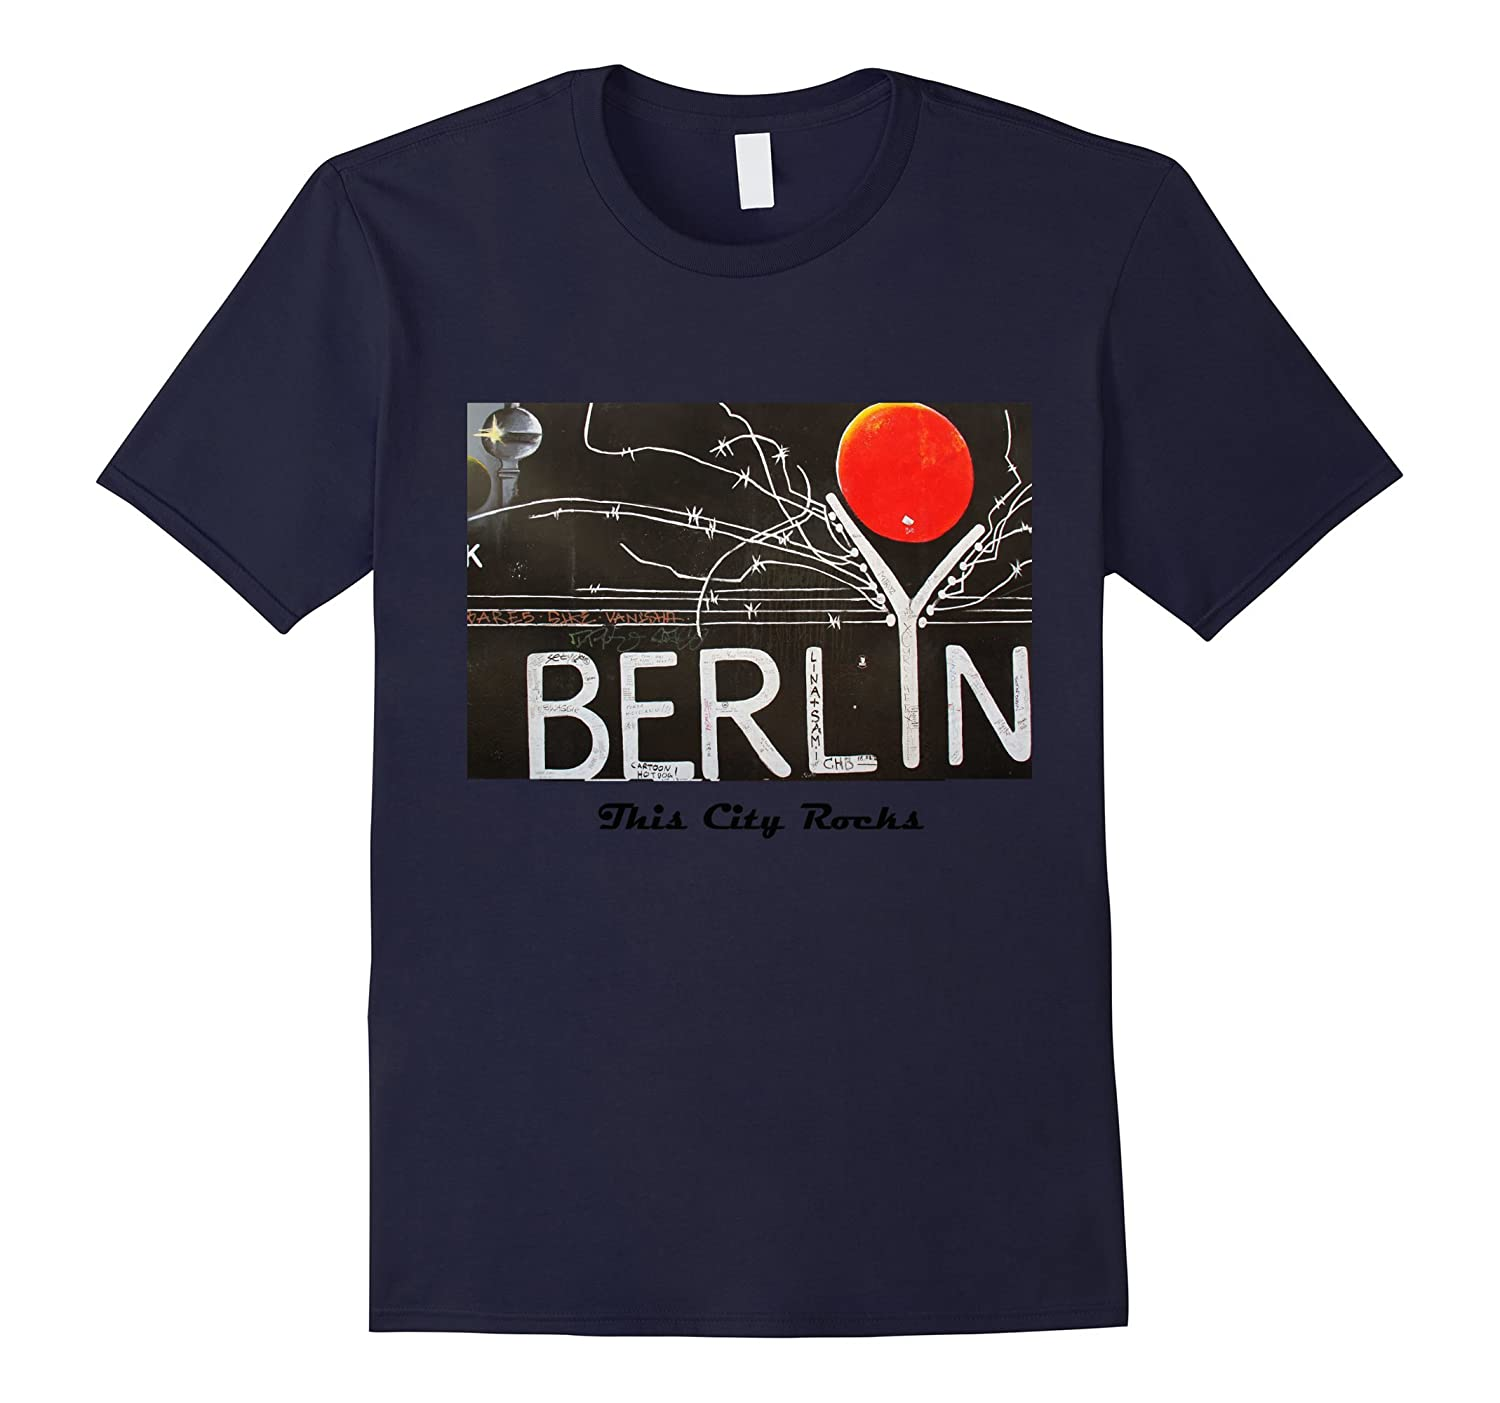 Berlin printed design tshirt t-shirt shirts tee-Art